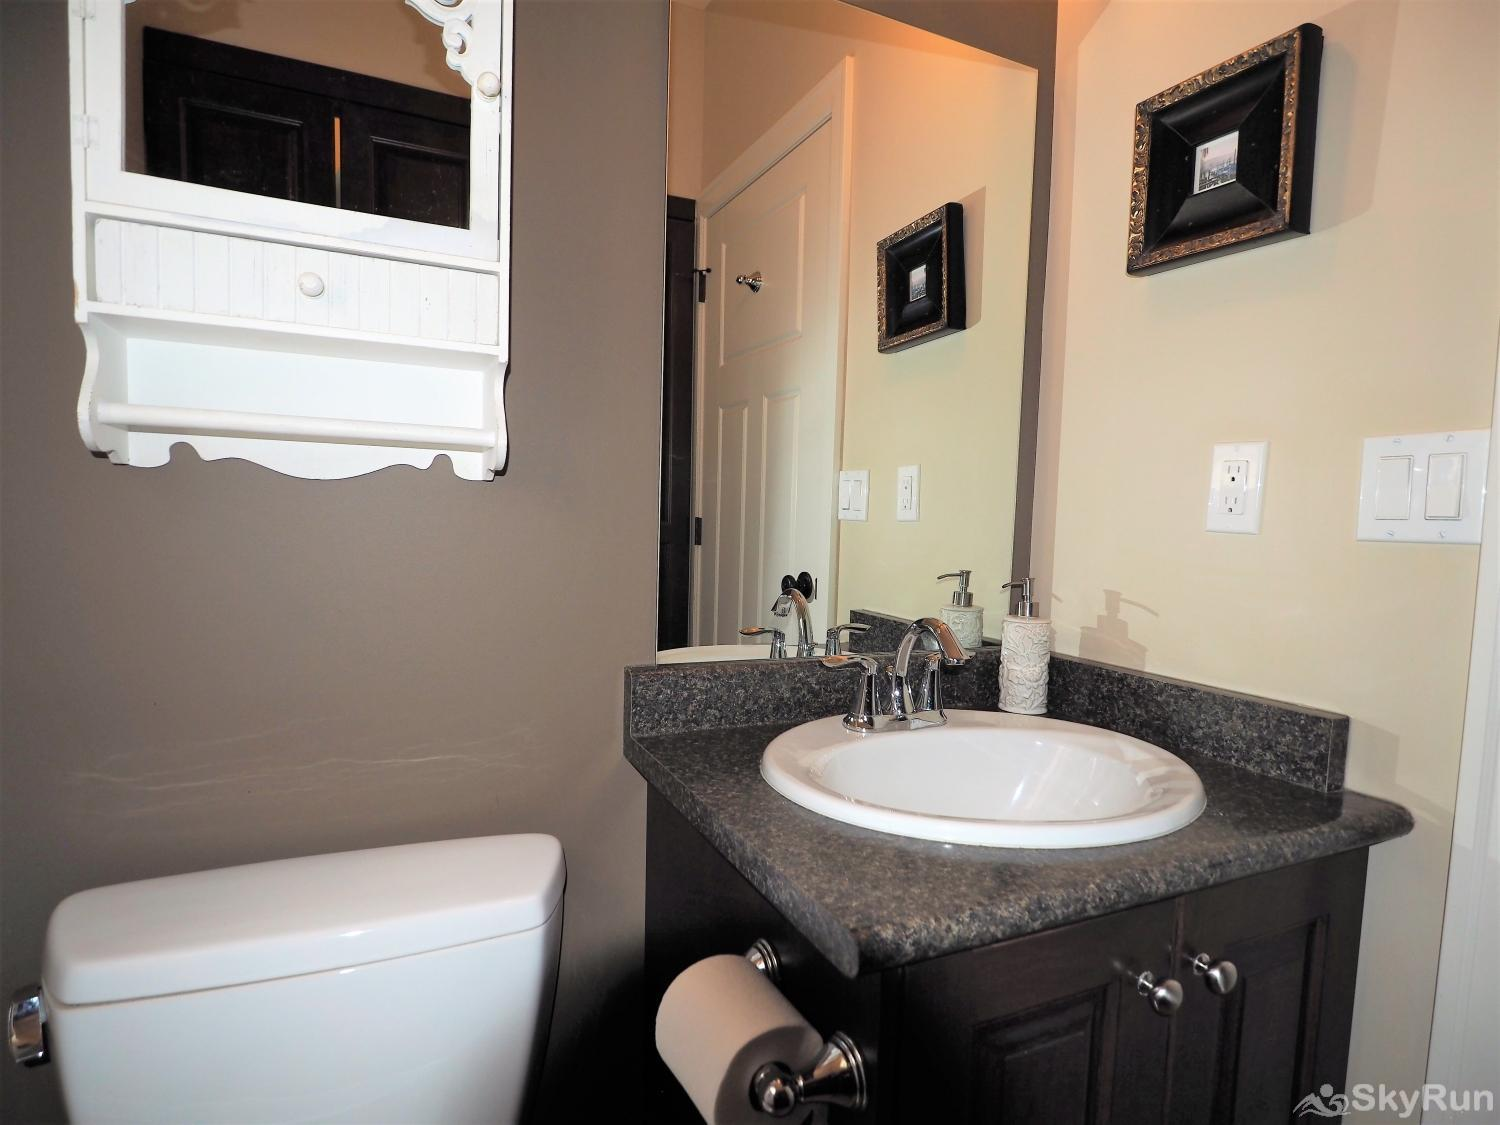 Old Summerland 3 bedroom home convenient powder room off the living room